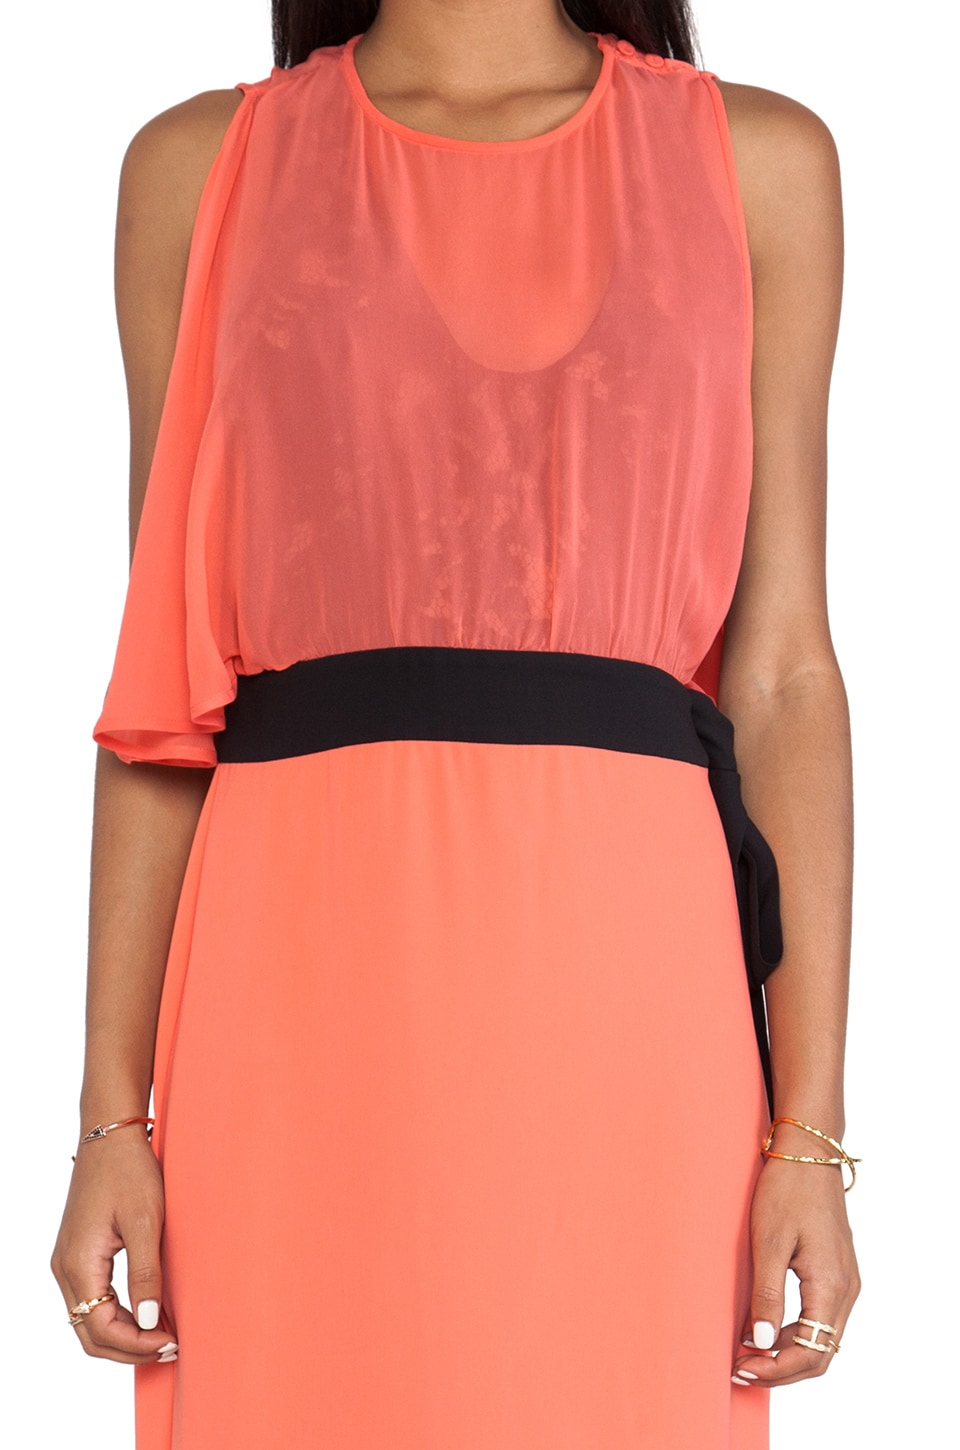 BCBGMAXAZRIA Runway Maxi Dress in Coral Reef